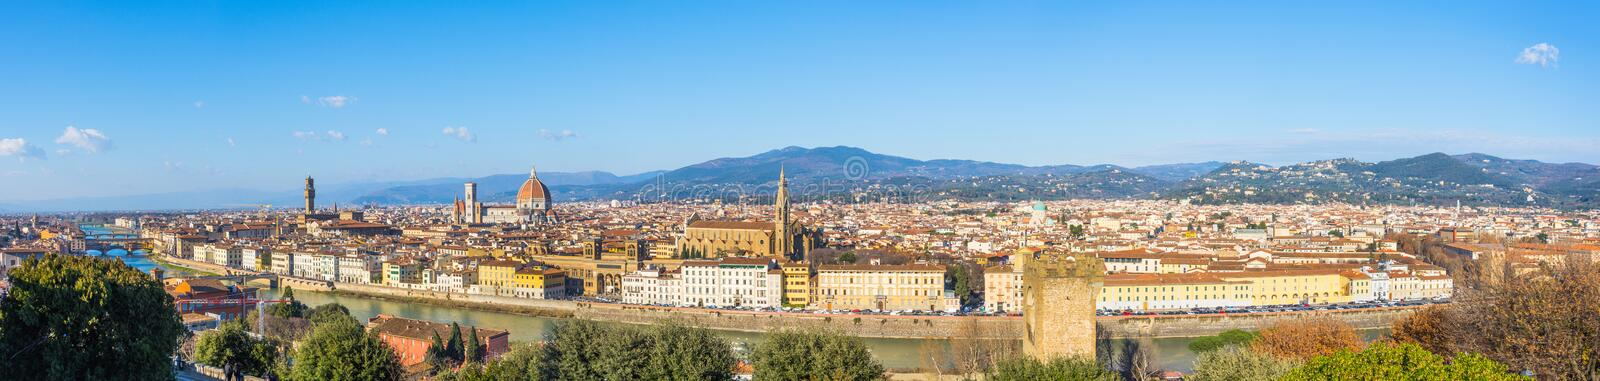 Florence Italy at sunny day cityscape aerial wide view panorama royalty free stock photos